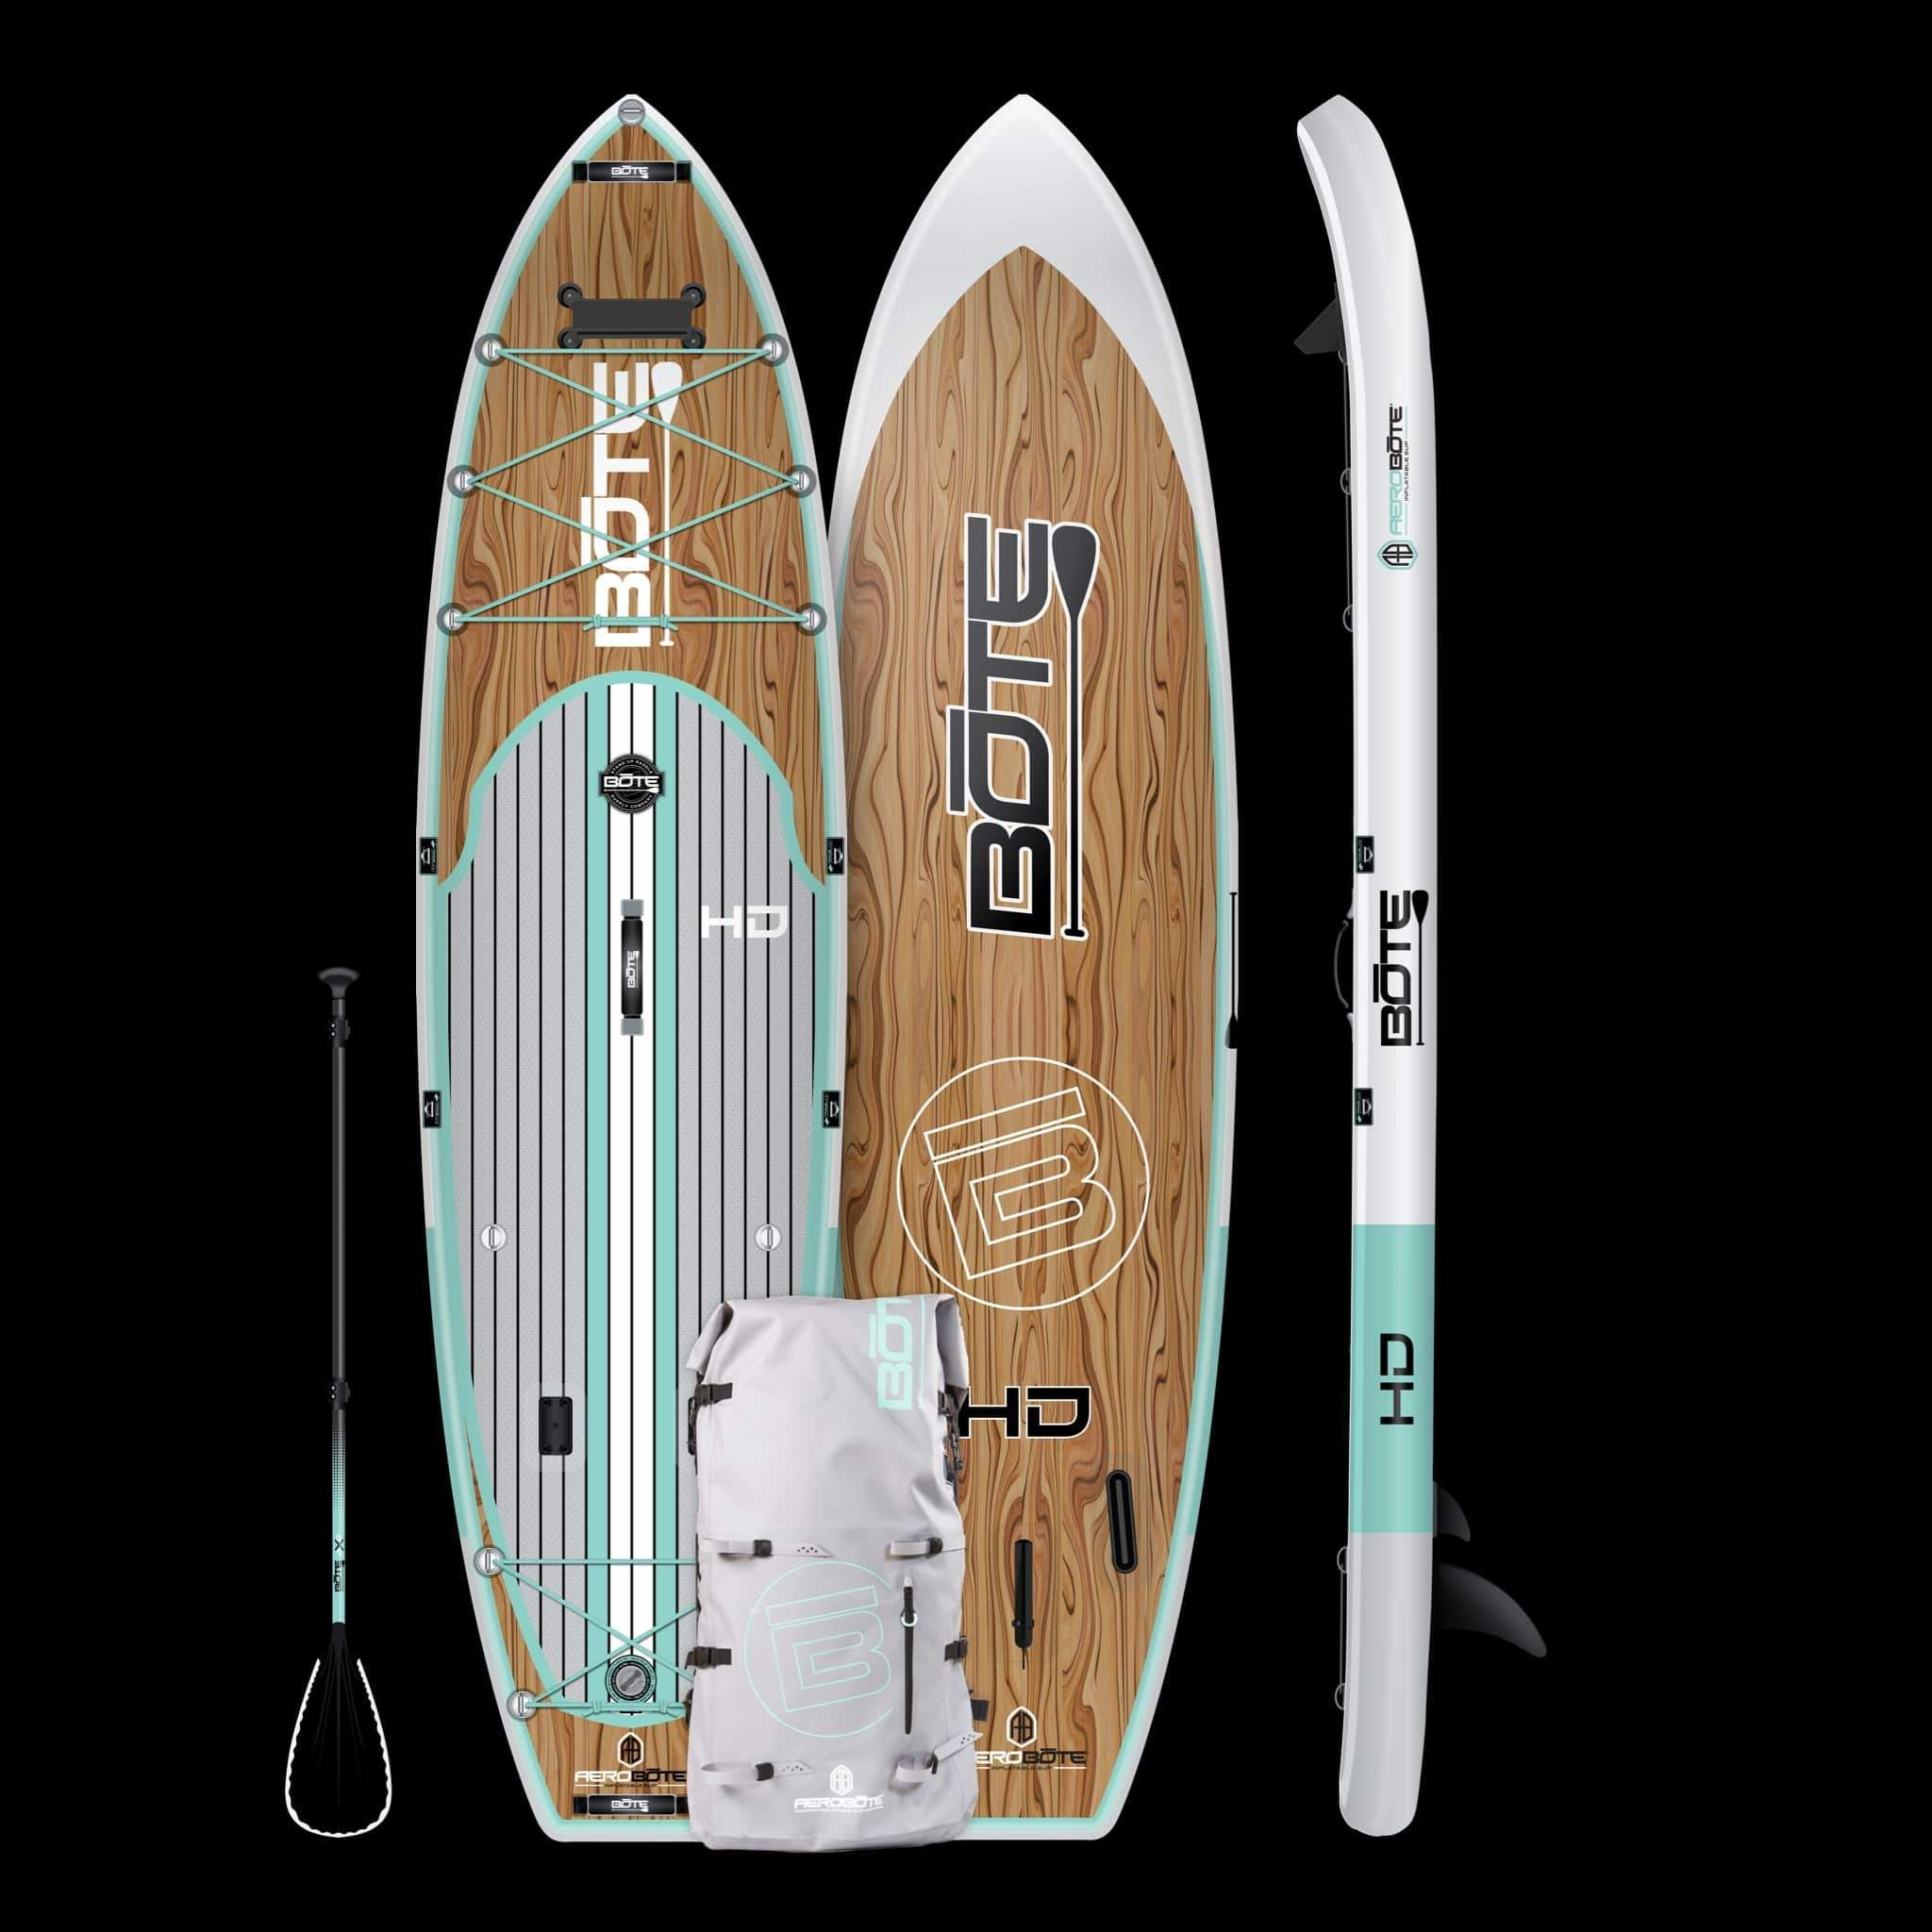 The New Emerging Trend BOTE SUP Boards